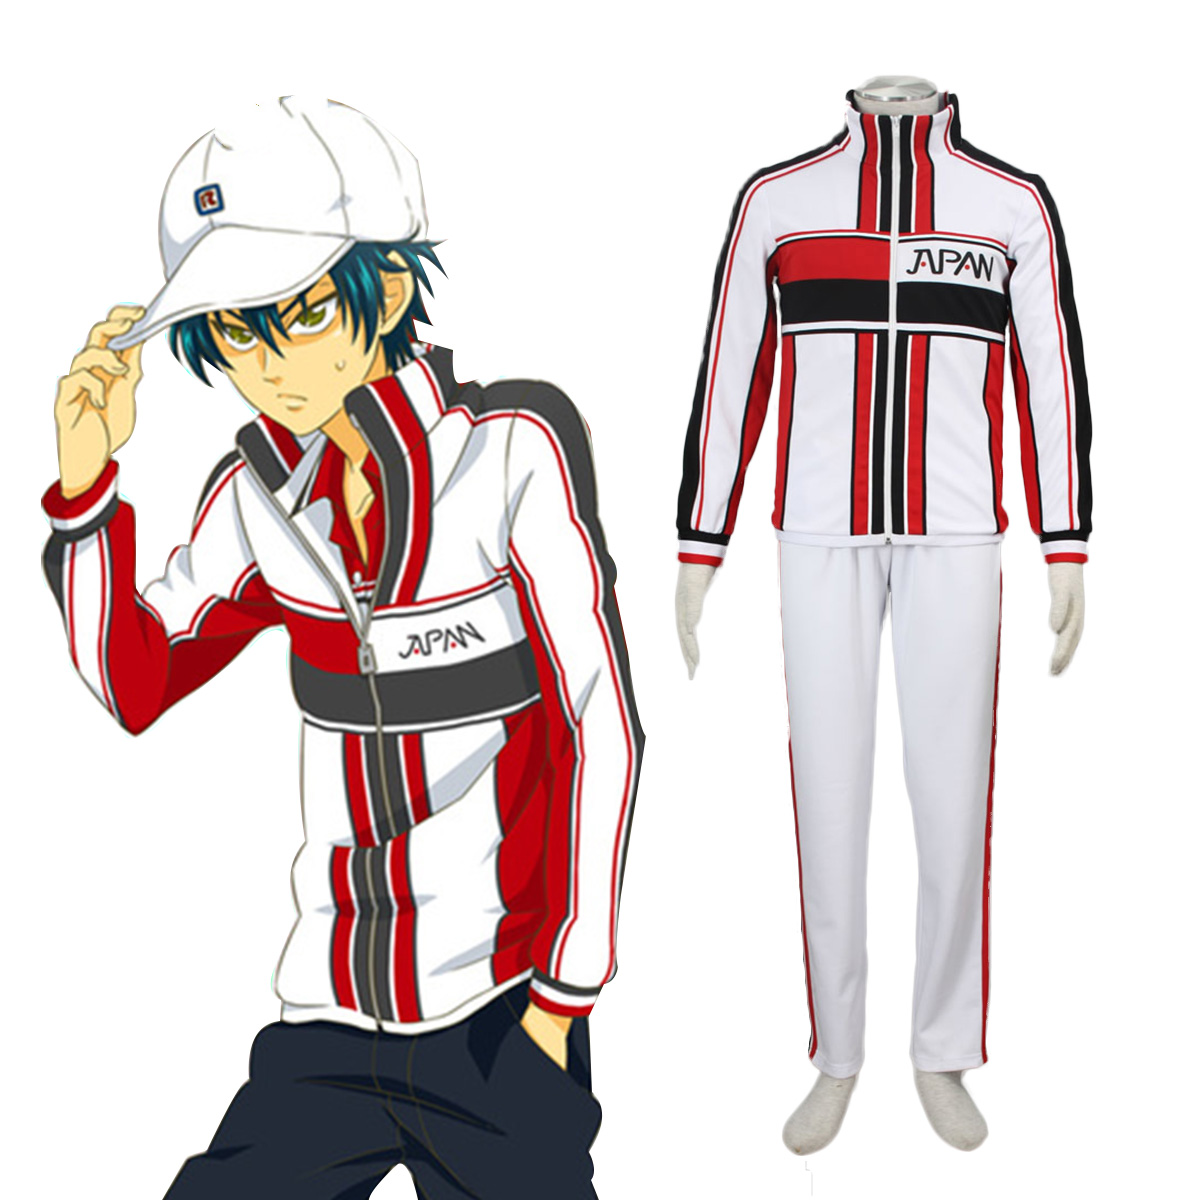 Deluxe The New Prince of Tennis Japanese Tennis Team Winter Uniform 1ST Dresses